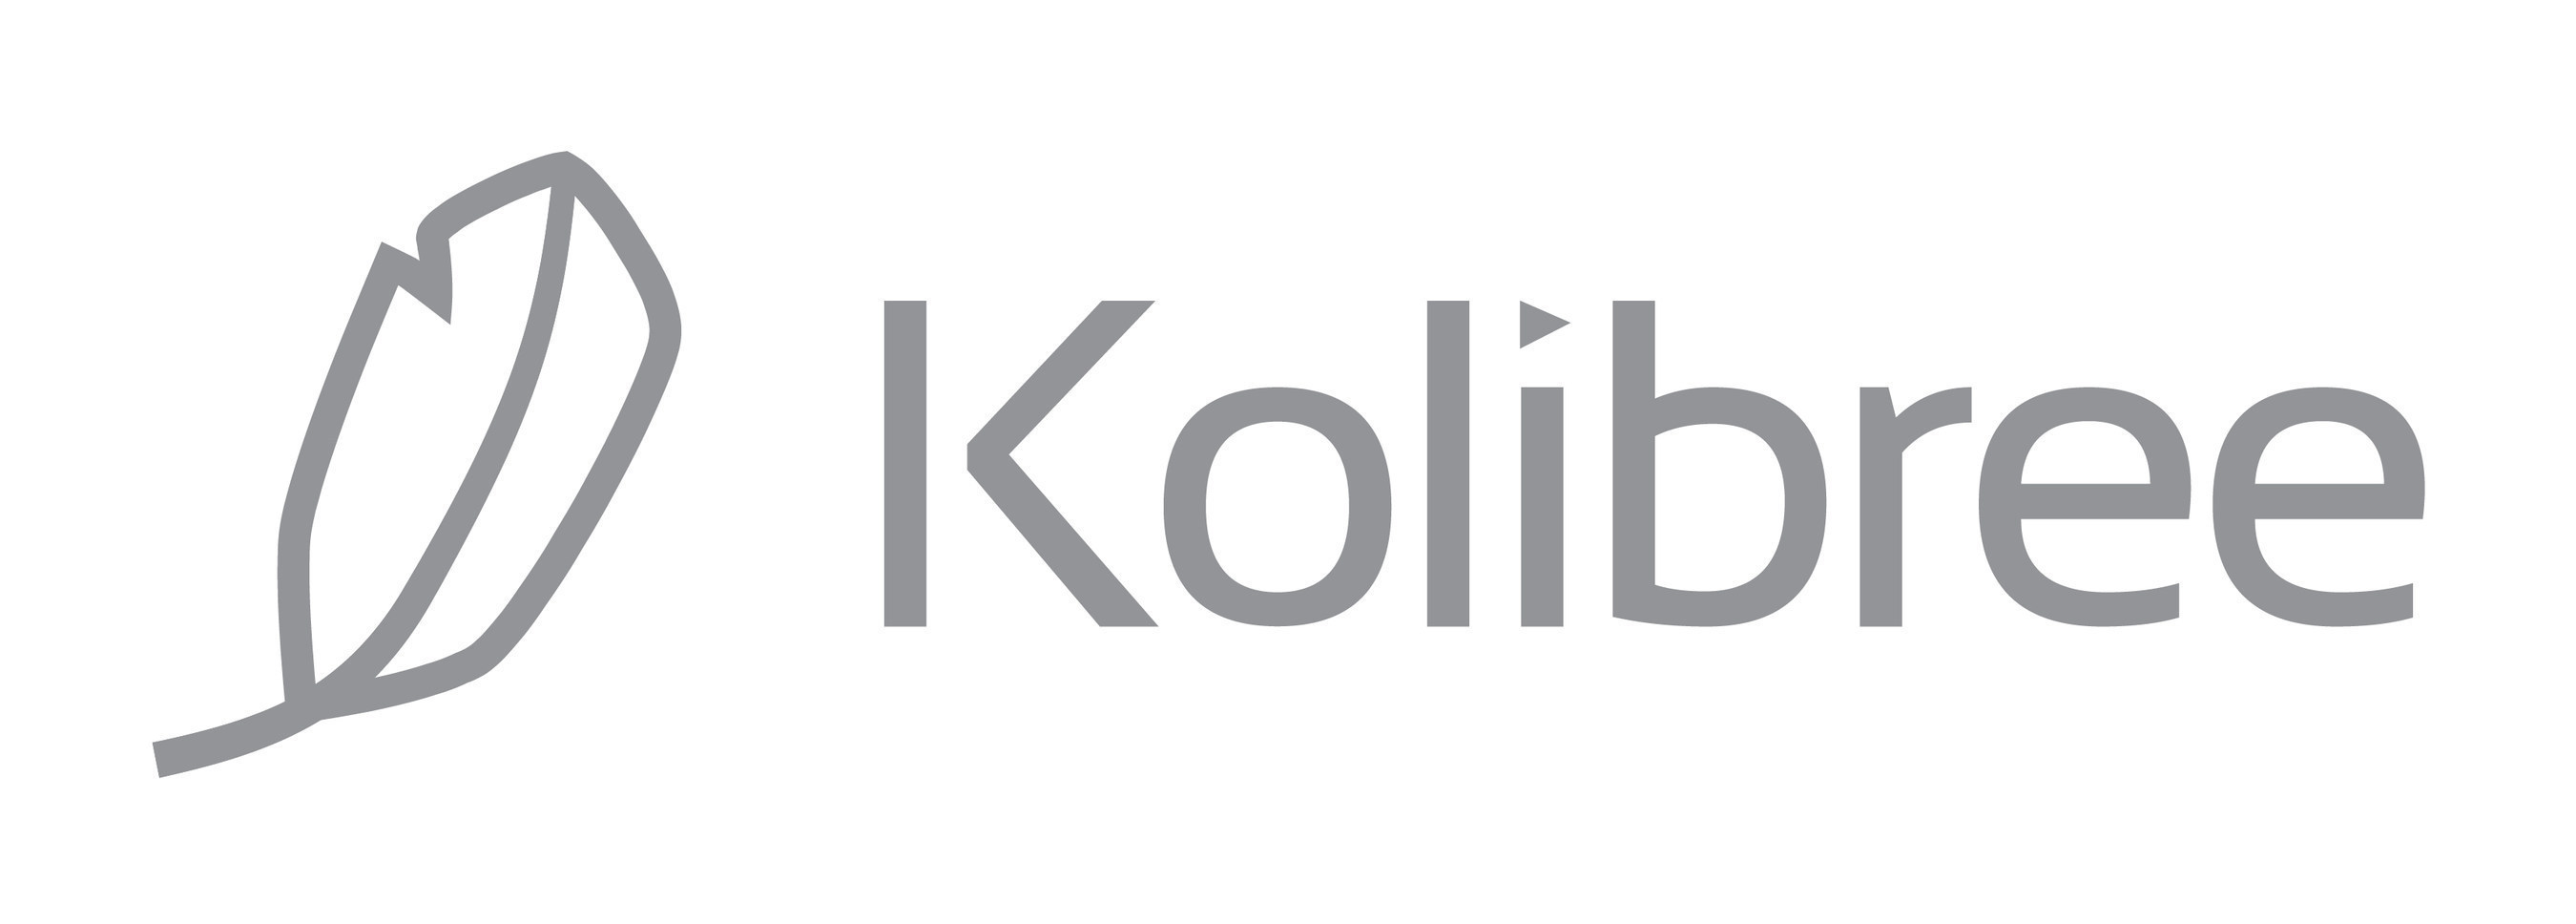 Kolibree Connected Electric Toothbrush to Show at CES 2015